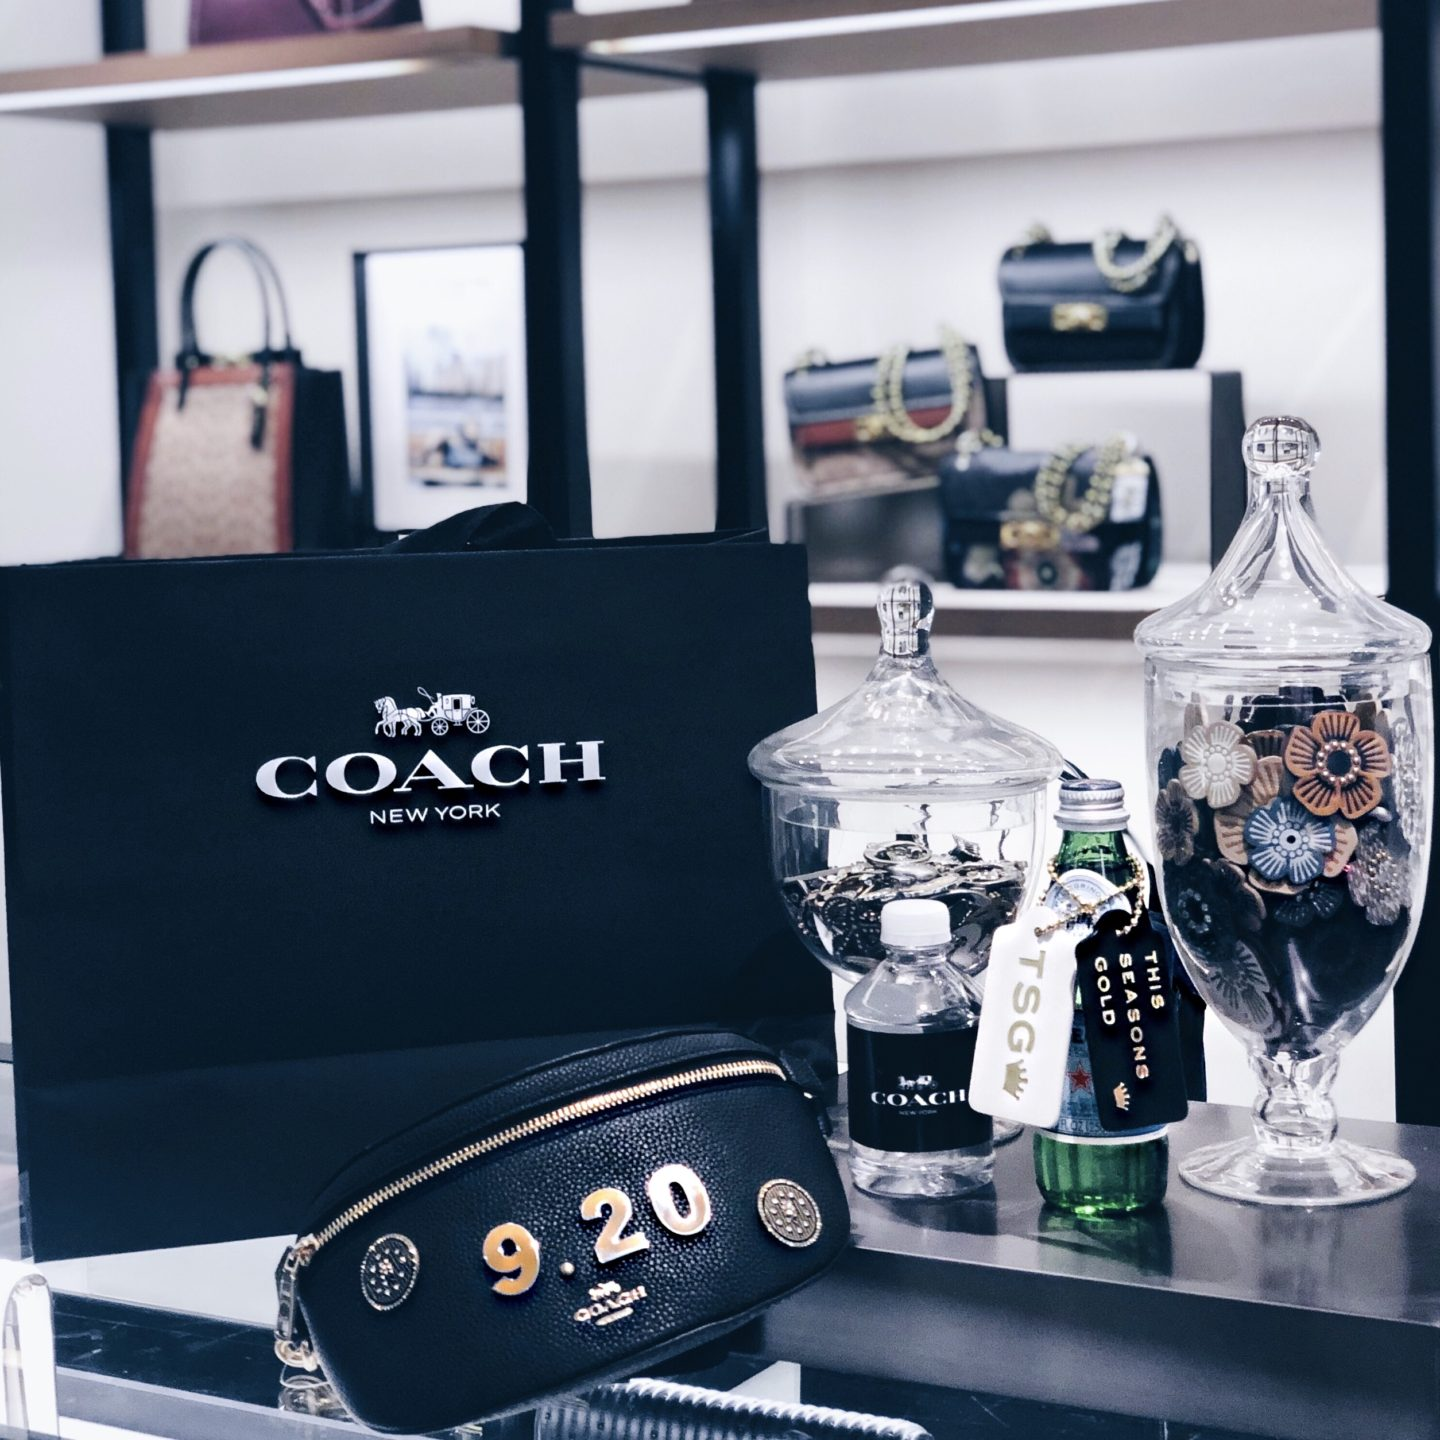 COACH Handbag event